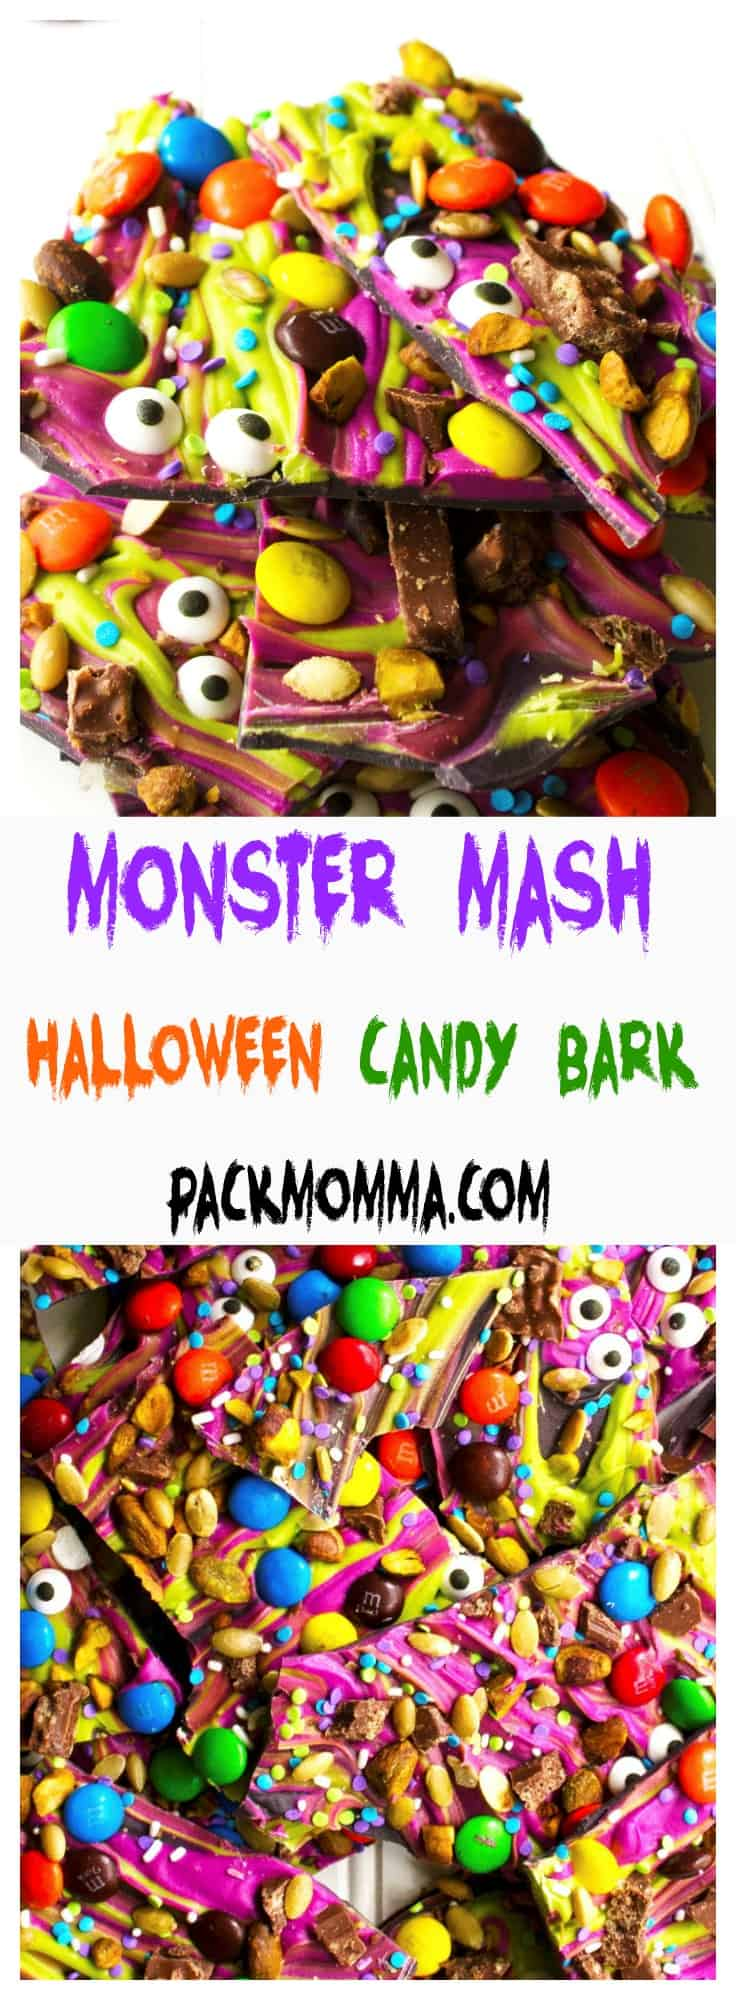 Monster Mash Halloween Candy Bark | This festive and fun no-bake Monster Mash Halloween Candy Bark is the perfect sweet treat to scare up some new friends this Halloween | Pack Momma | https://www.packmomma.com